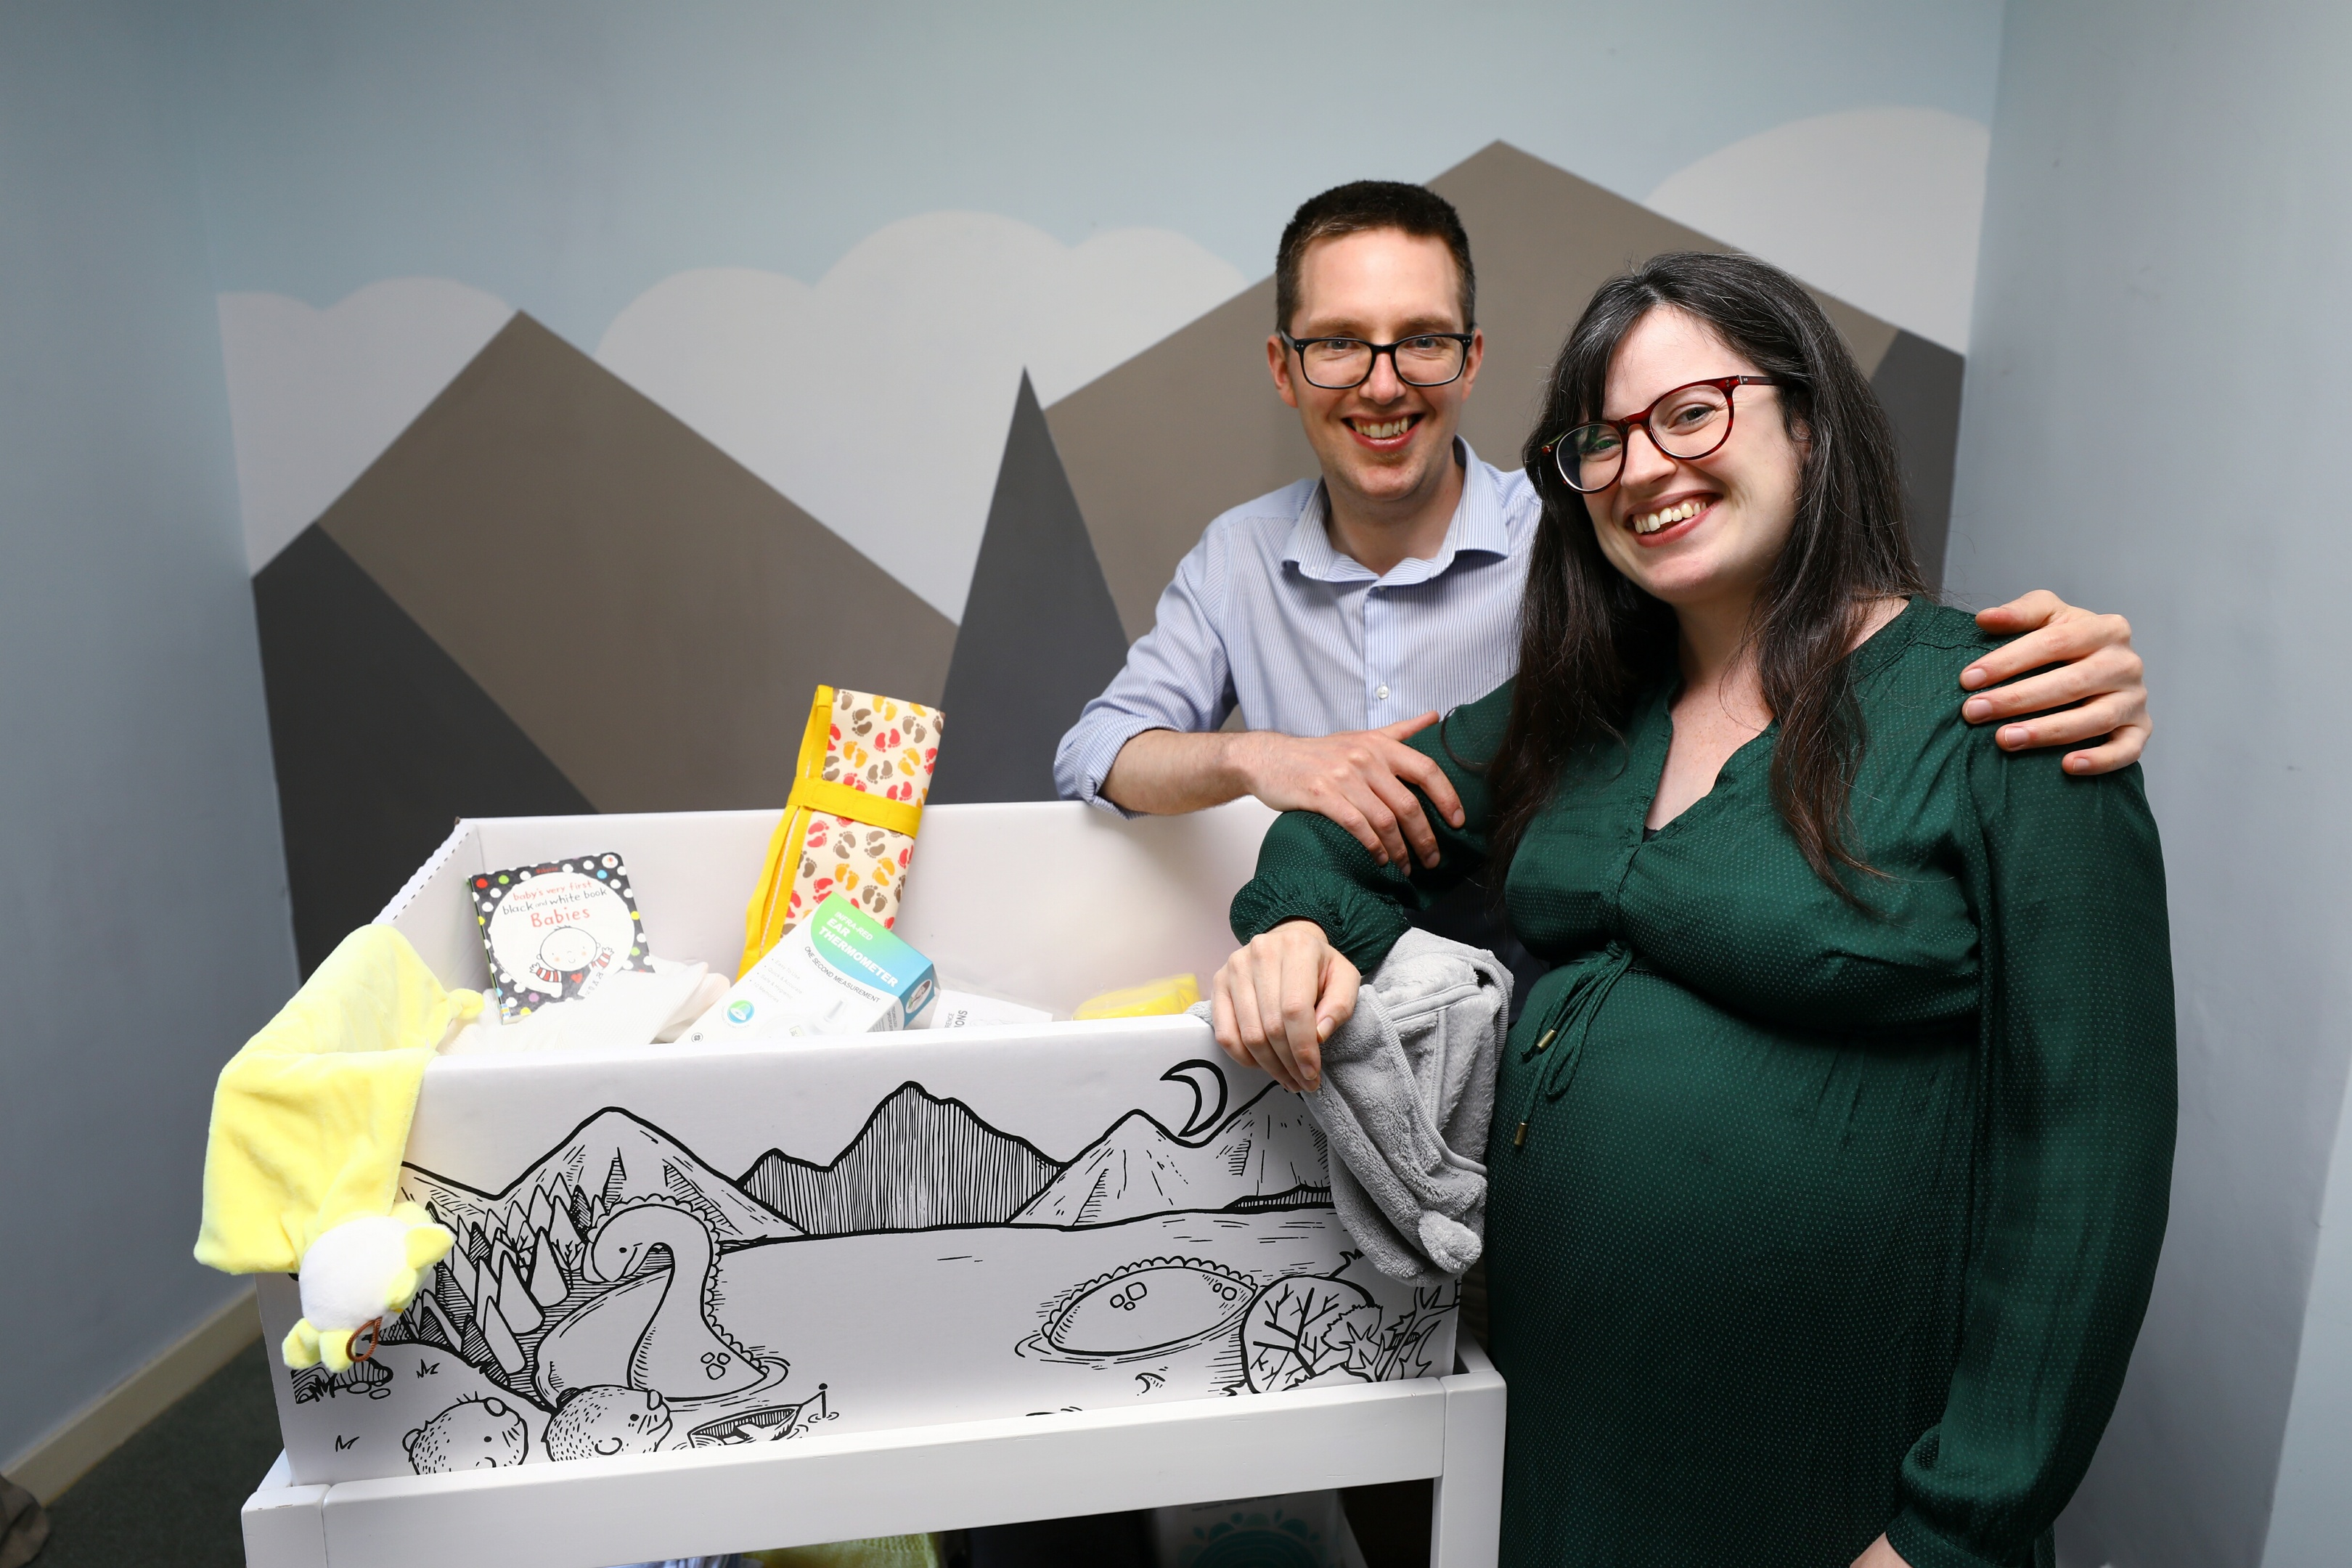 Gary Phillips and Anna McFarlane received Scotland's 50,000th baby box.